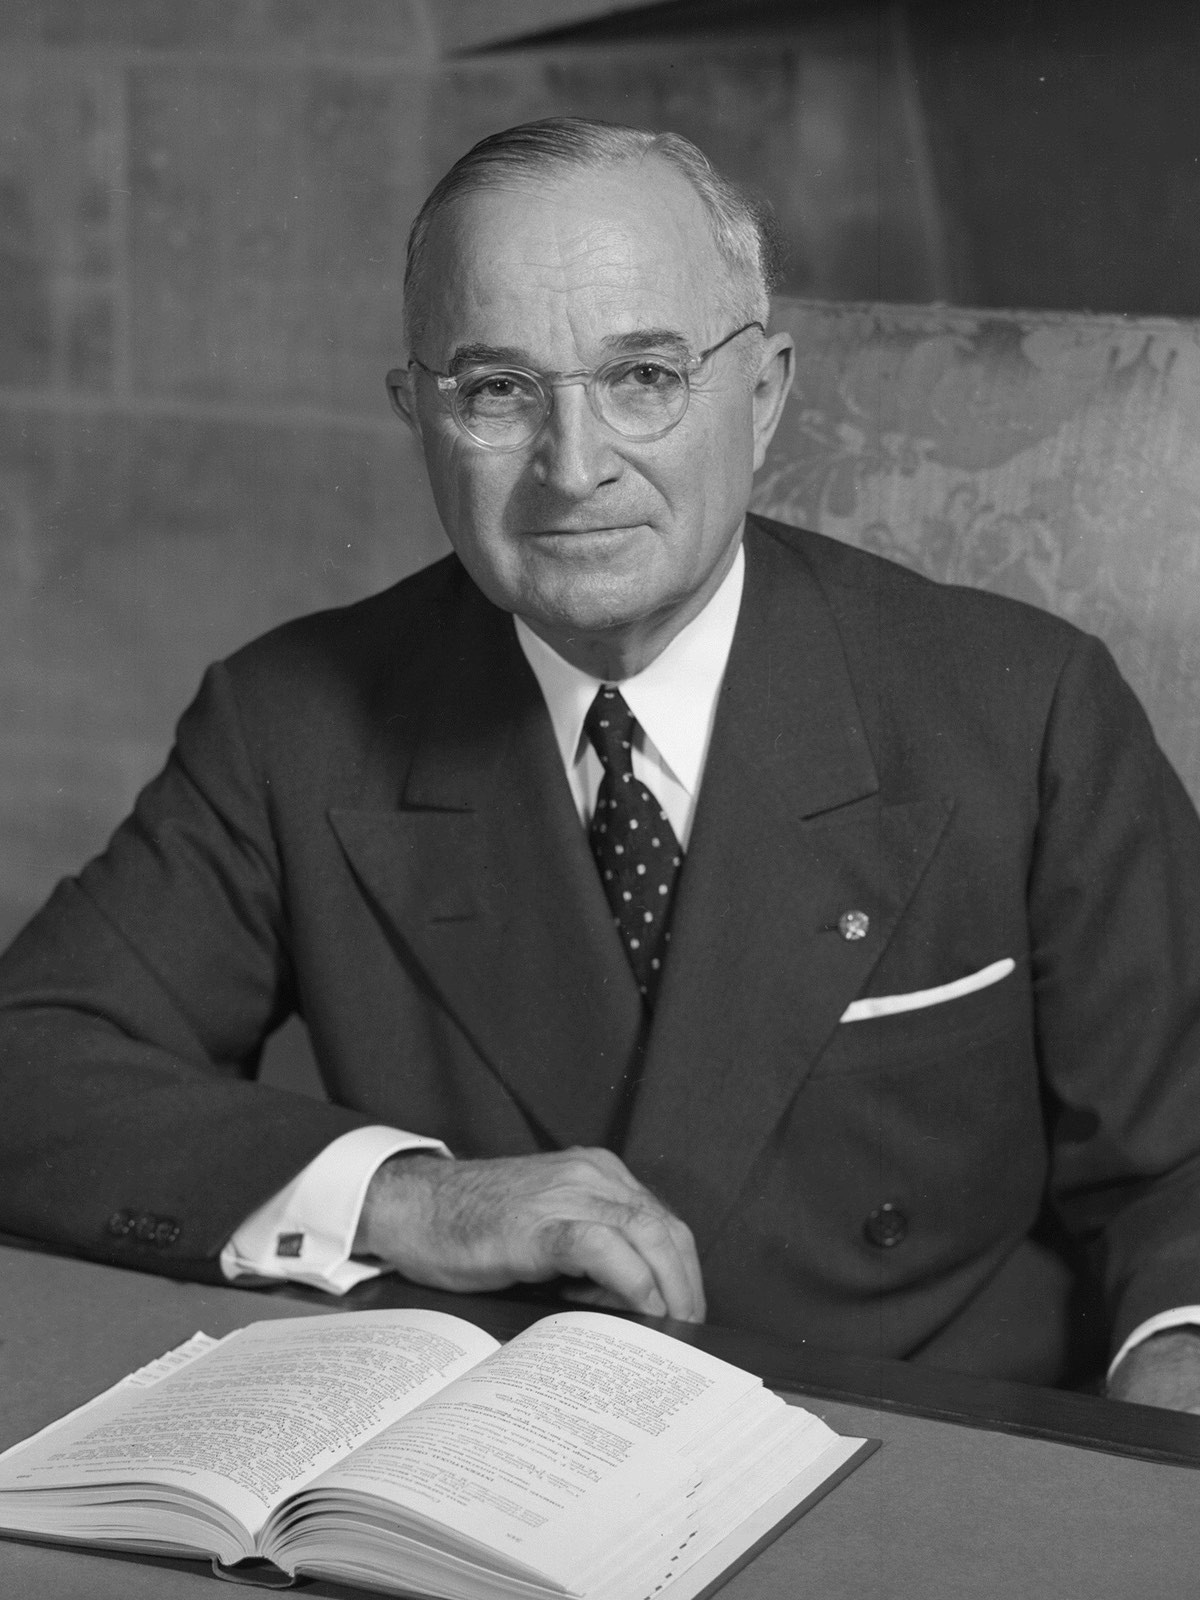 Did President Truman order the Golden Lily treasure to be kept secret?